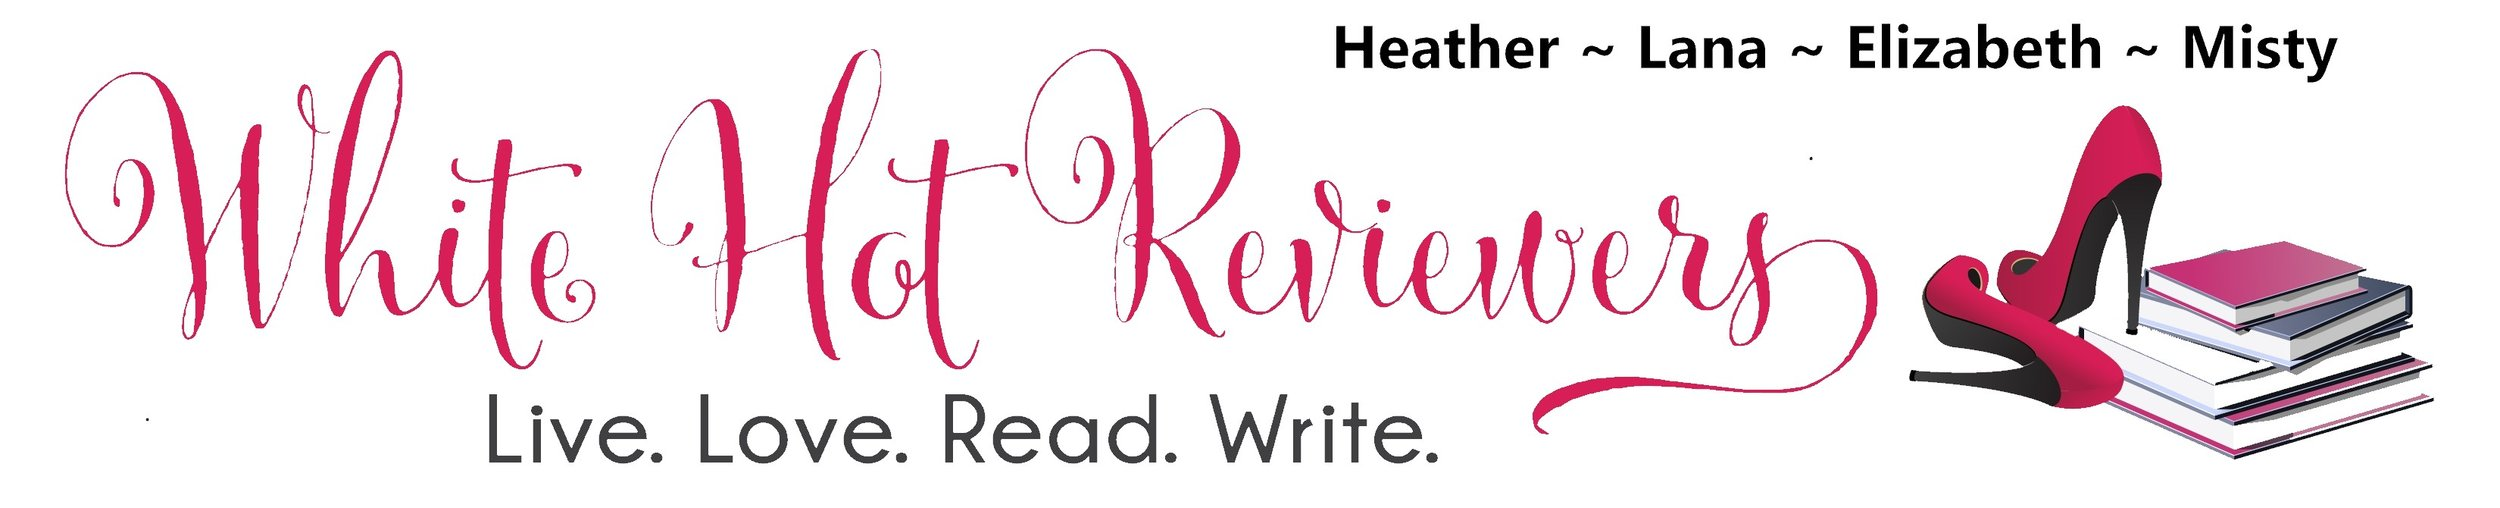 White Hot Reads logo_MAIN LOGO 2.png.jpg